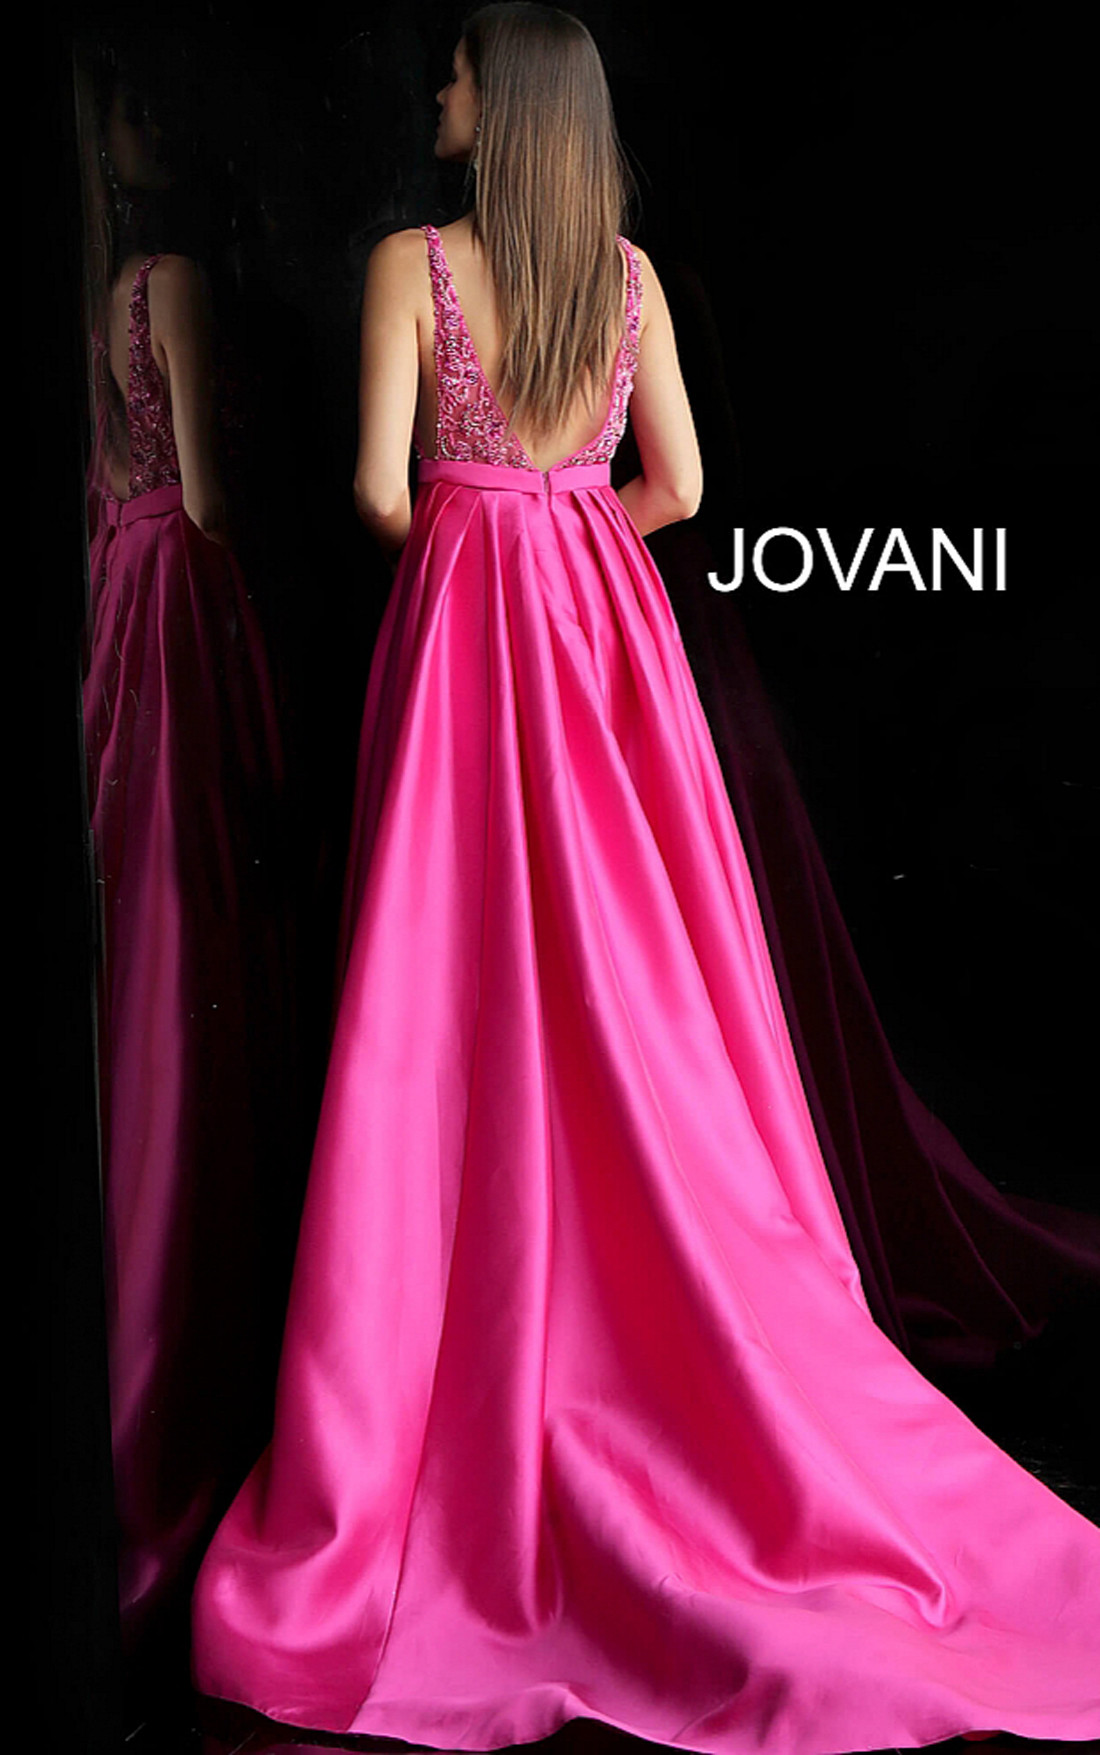 Jovani - Royal Blue Ballgown Dress (60016)